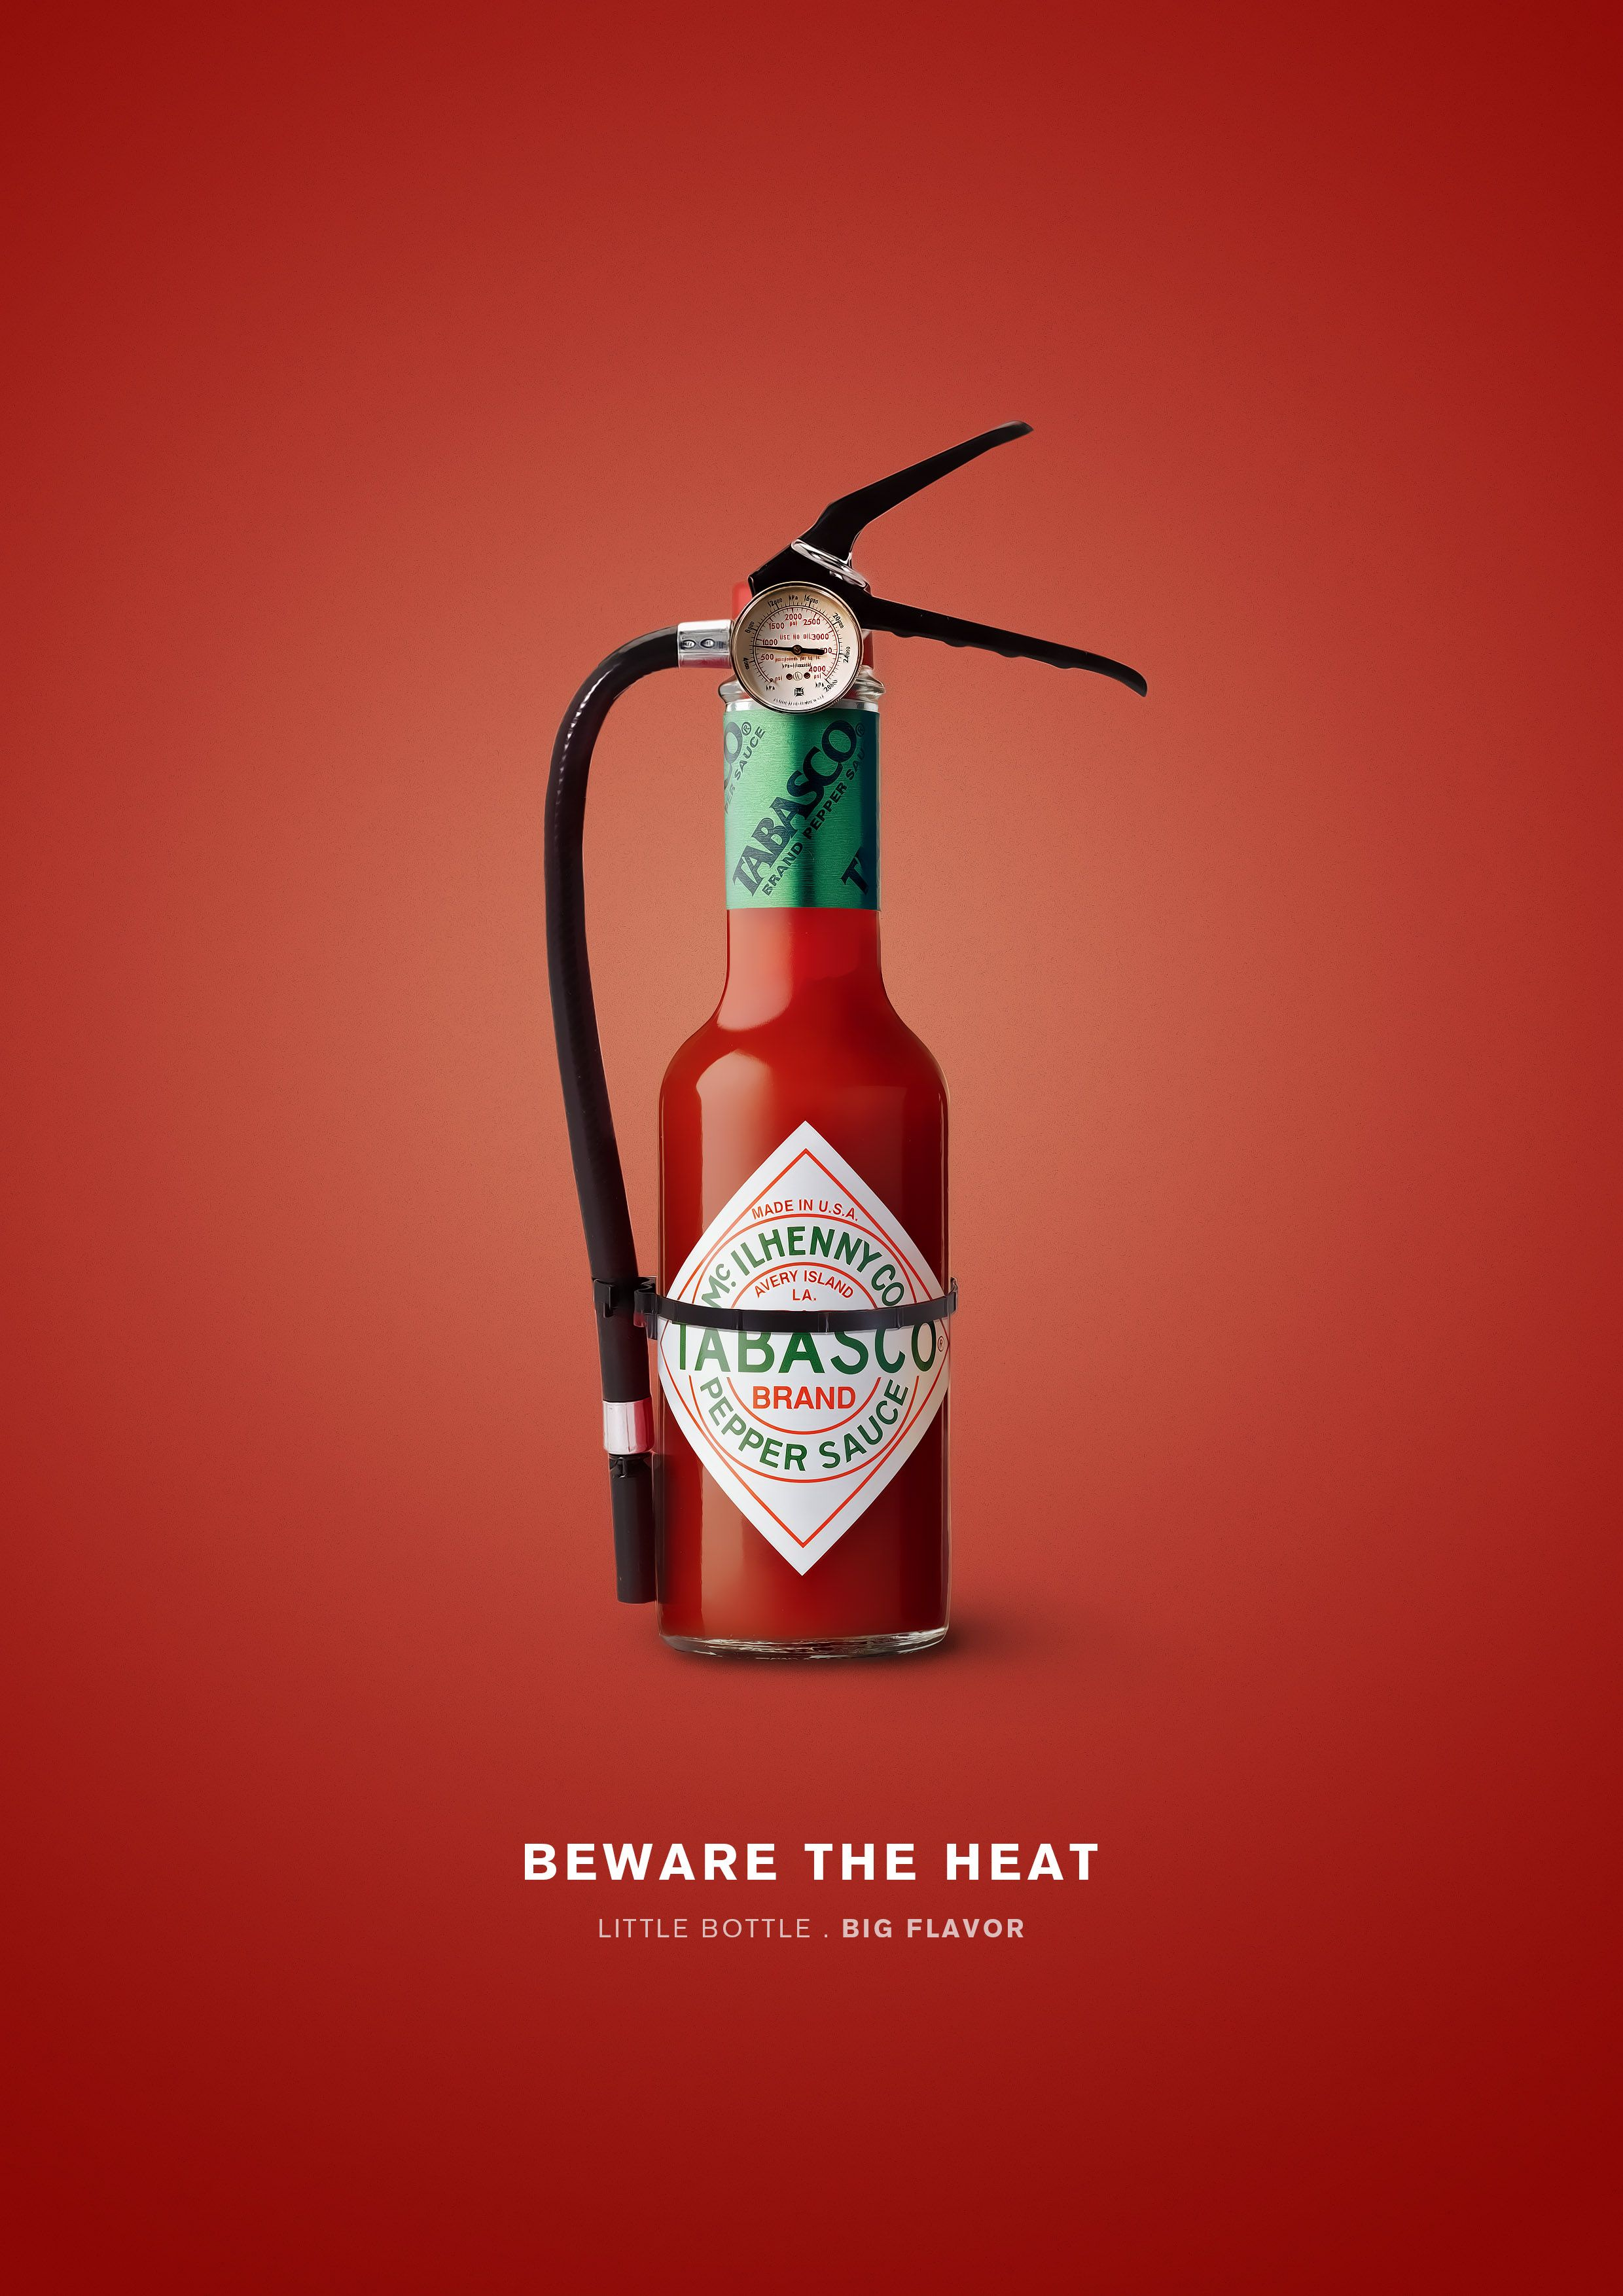 Tabasco graphic. The sauce looks like an extinguisher to showcase how hot the sauce is. #advertisement